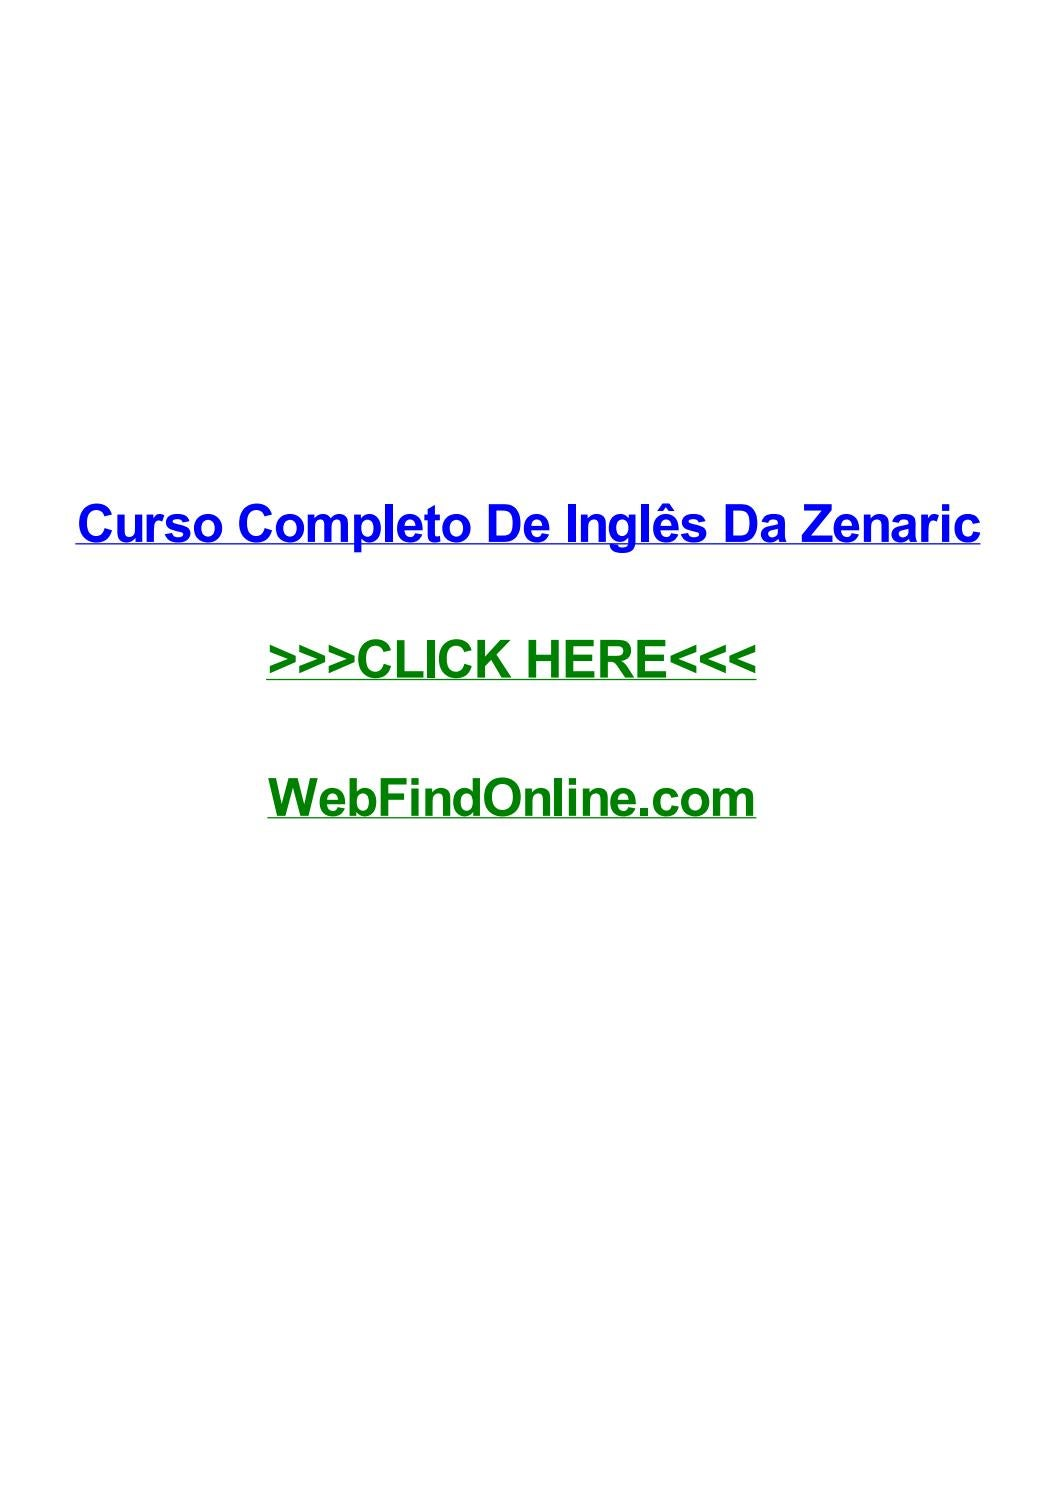 Zenaric dvd 1 parte 1 youtube.